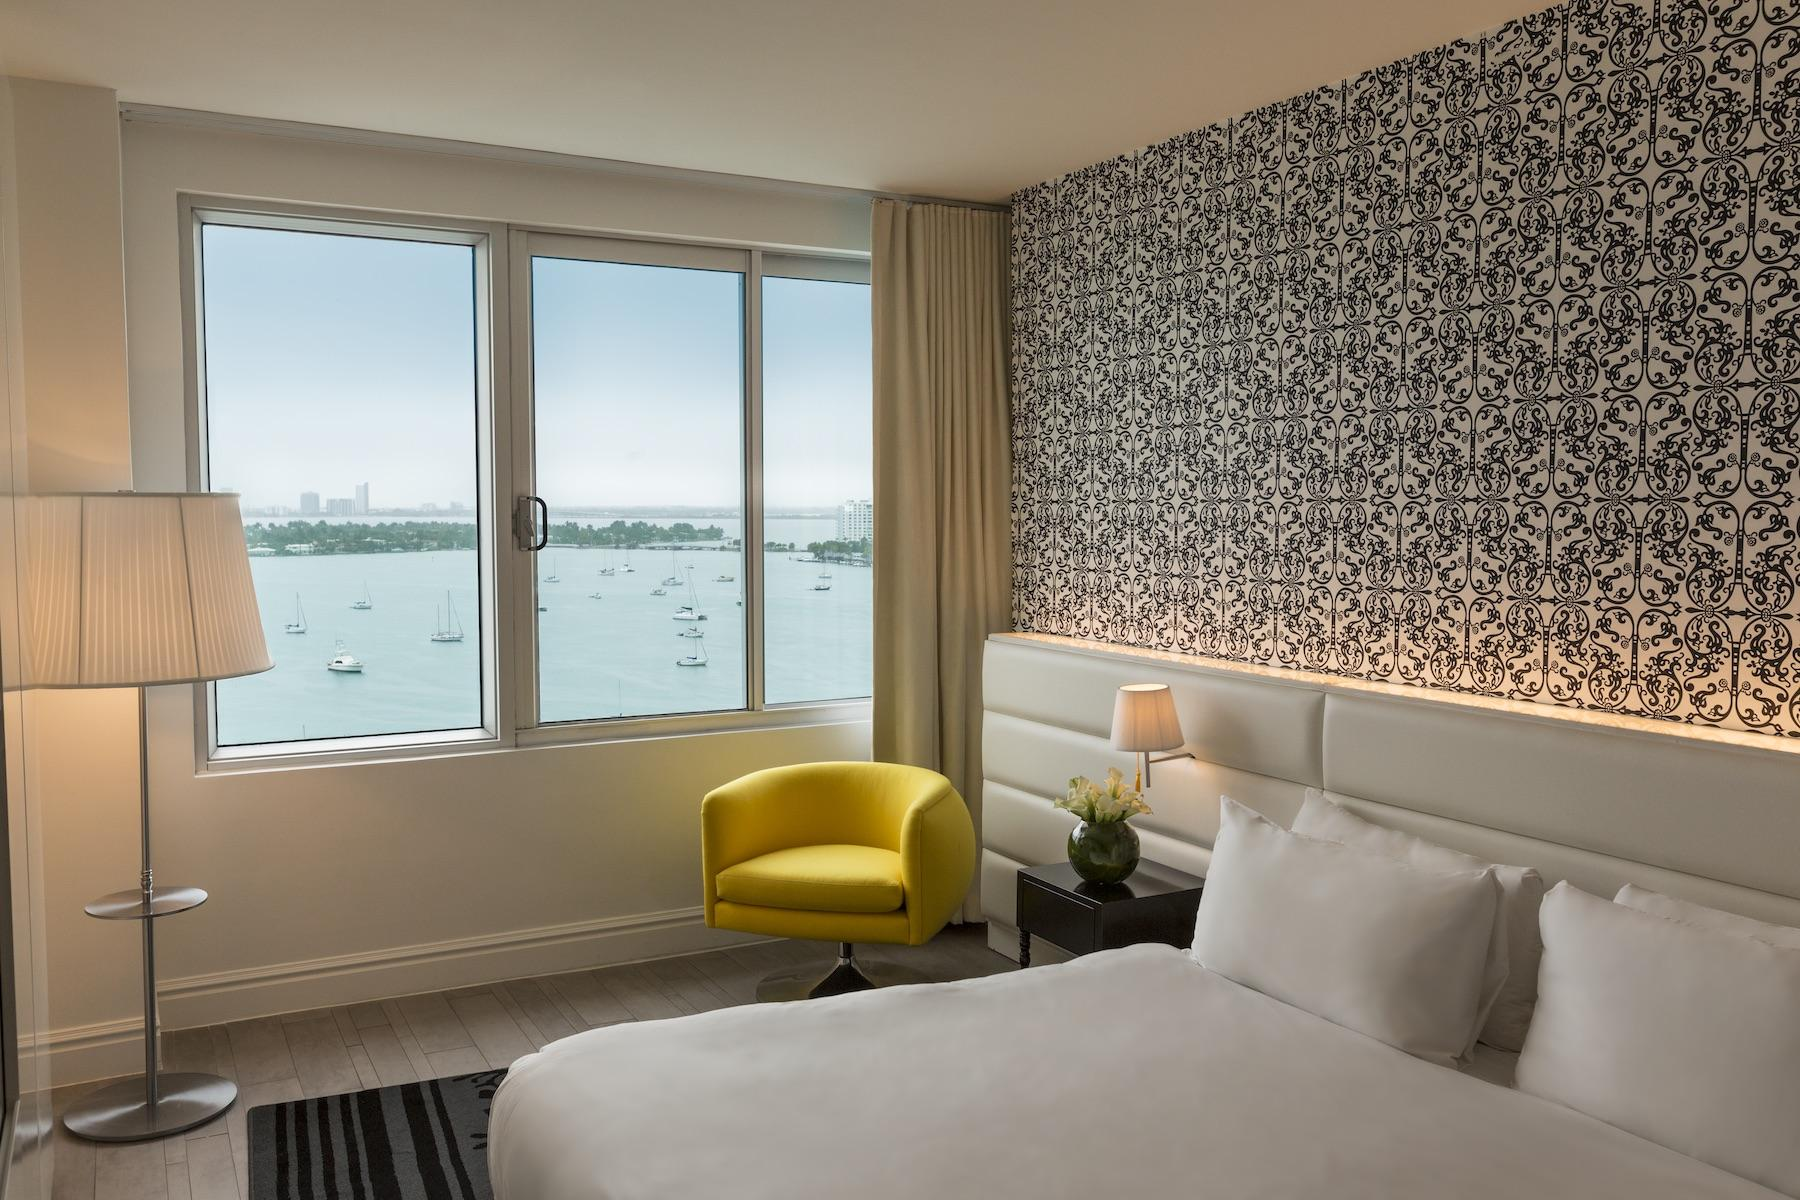 king-bed-bay-view-yellow-single-chair